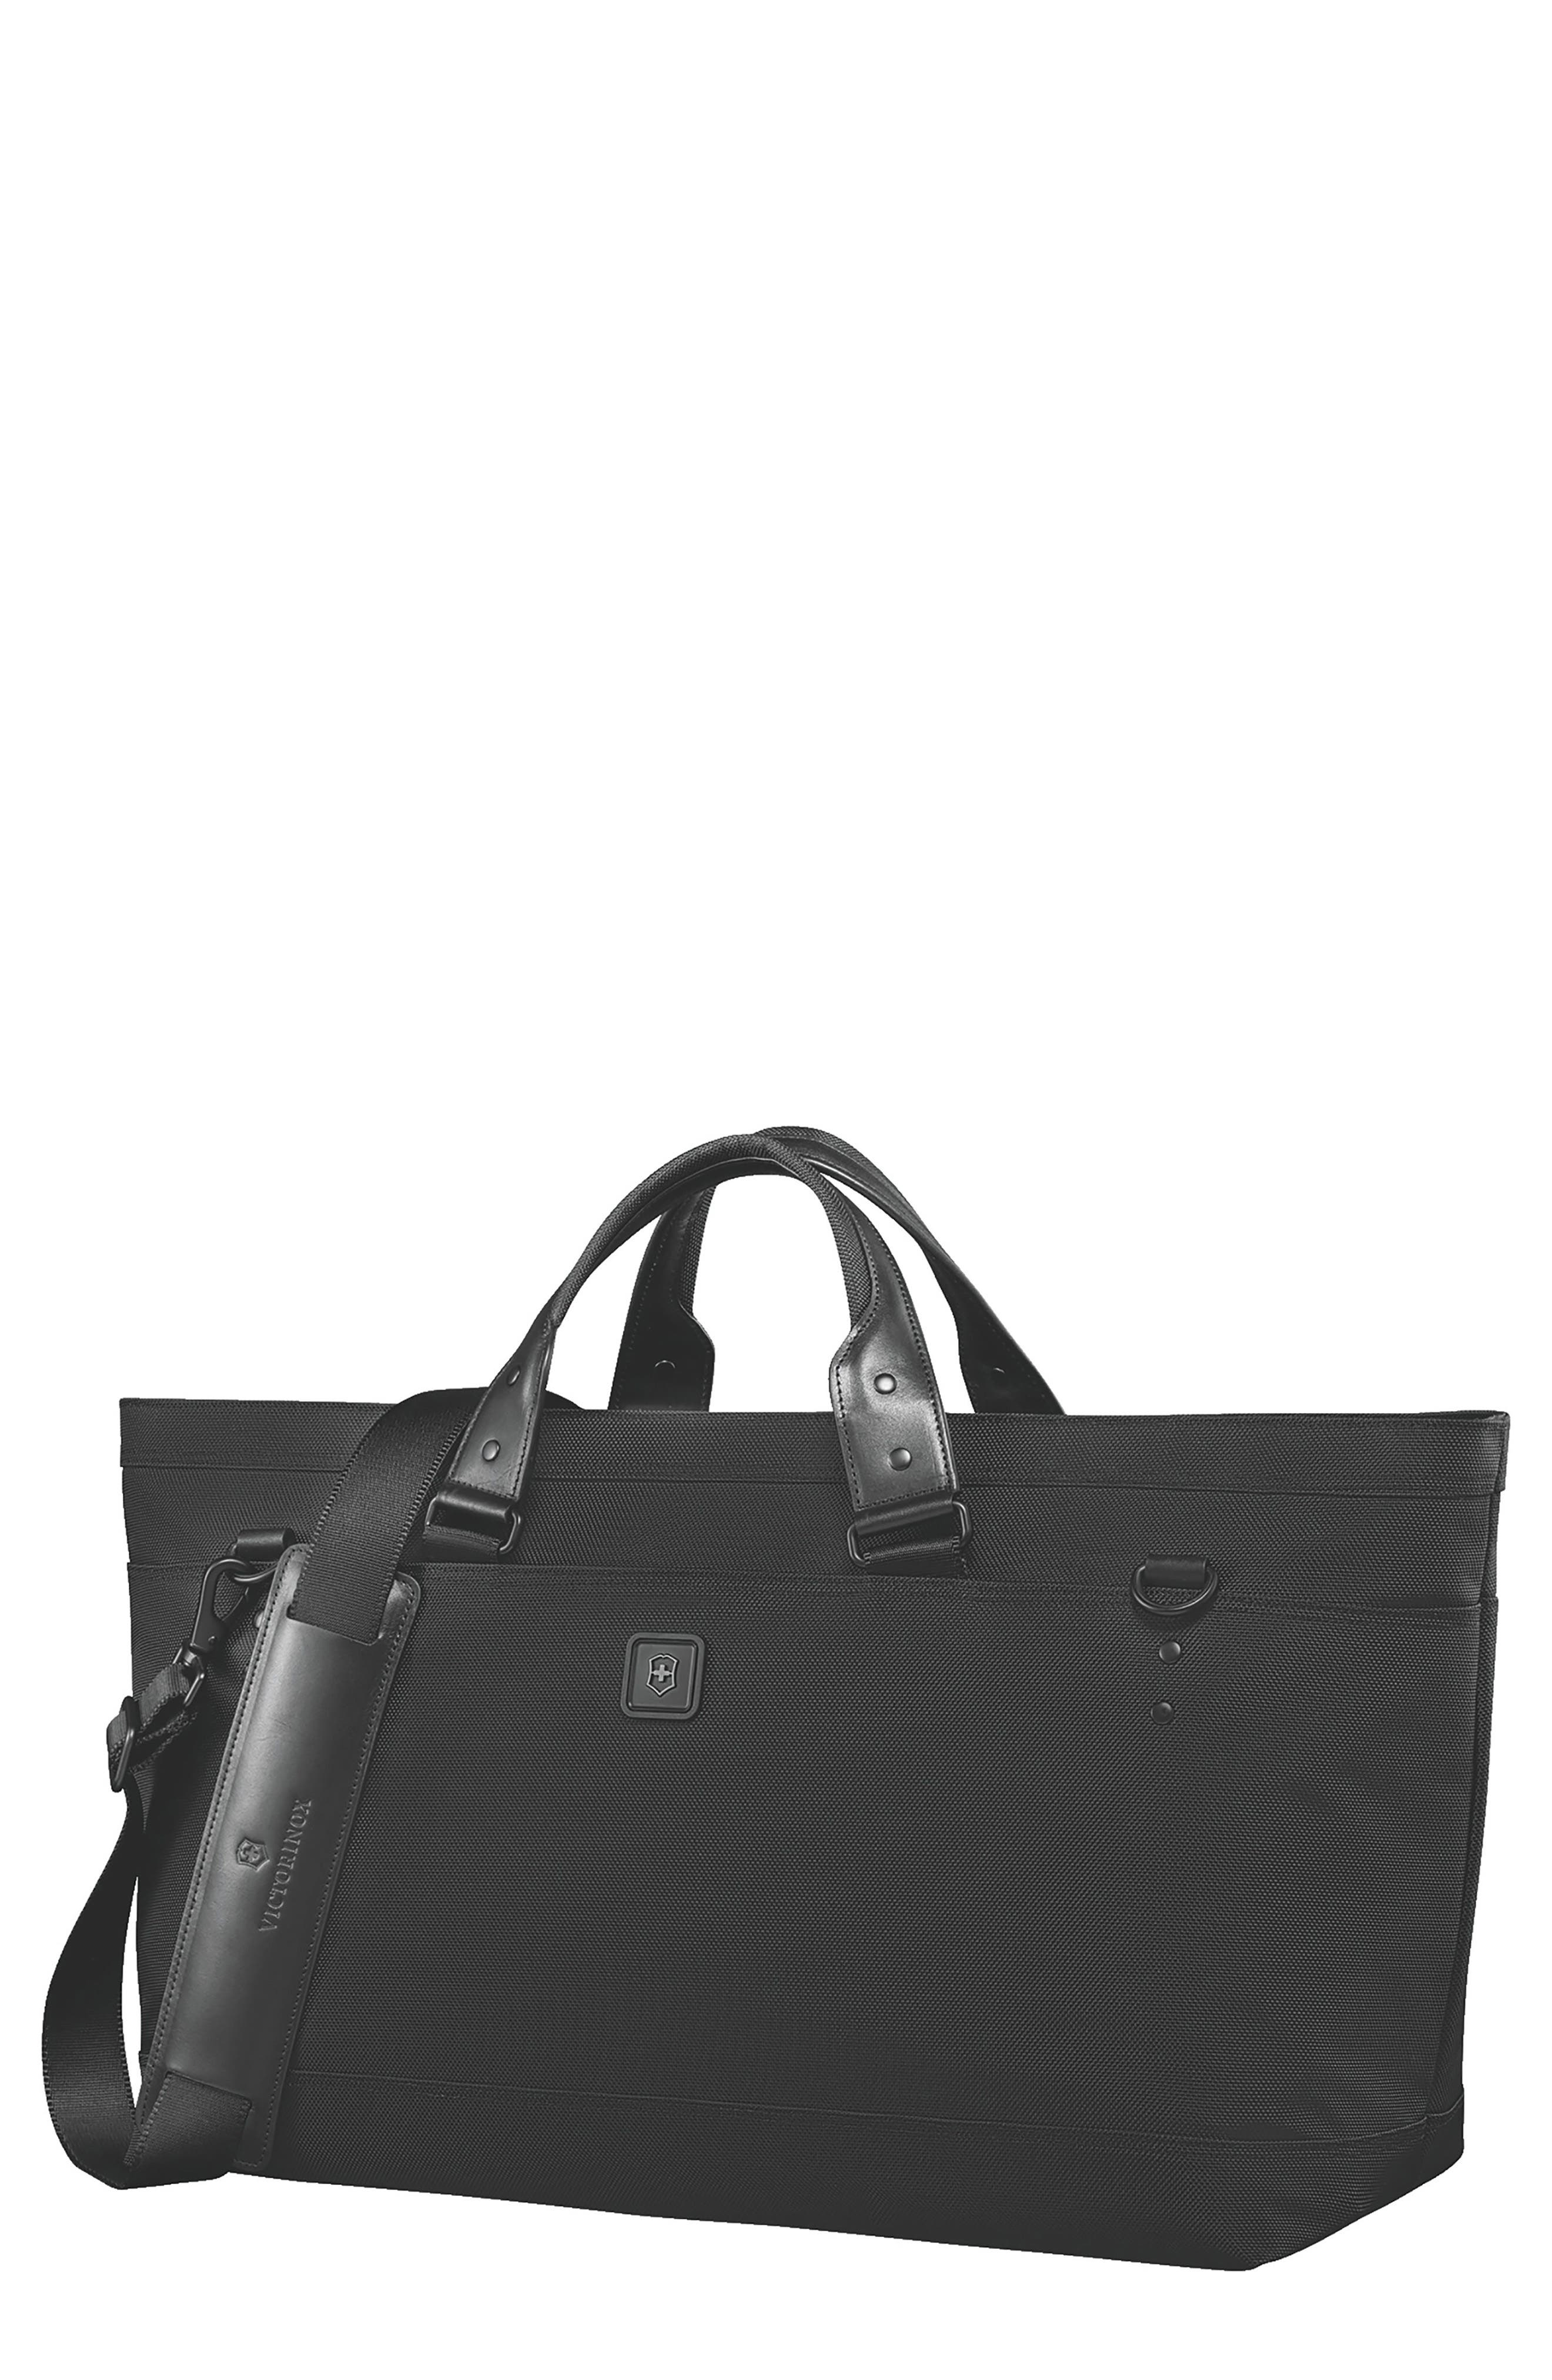 VICTORINOX SWISS ARMY<SUP>®</SUP> Lexicon 2.0 Deluxe Tote Bag, Main, color, BLACK